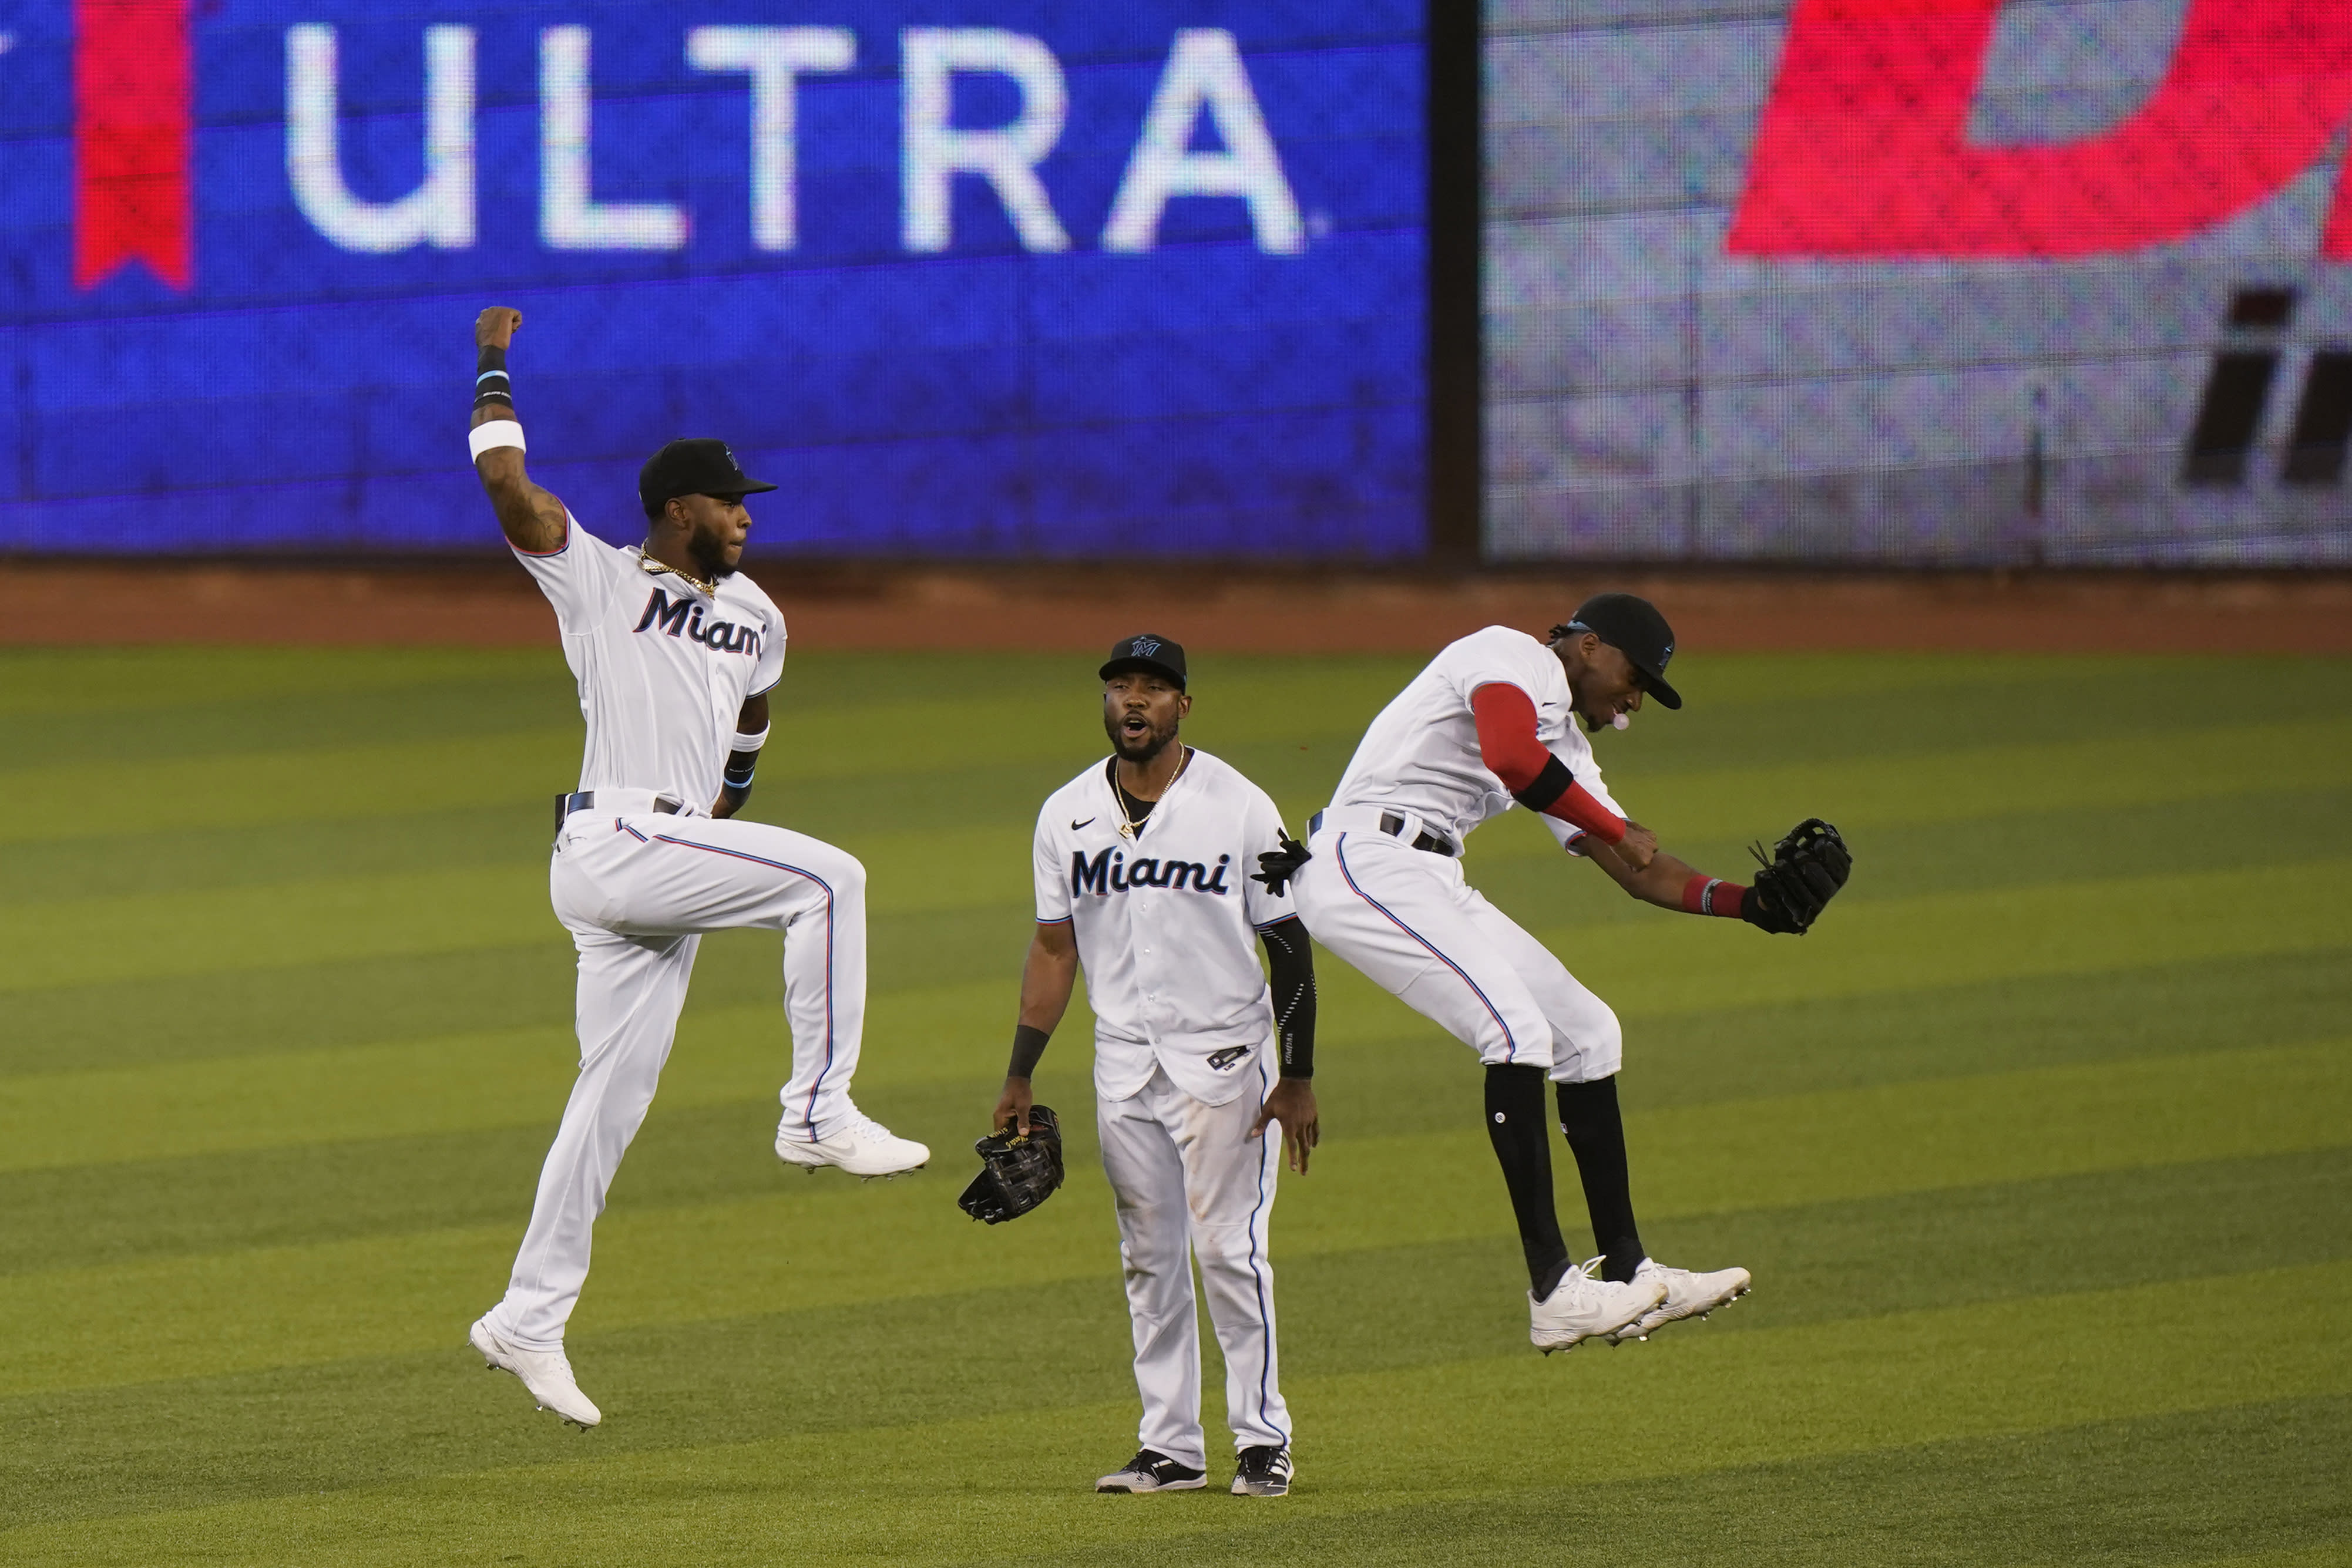 Miami Marlins' Starling Marte, center, watches as Monte Harrison, left, and Lewis Brinson leap to celebrate after they defeated the Philadelphia Phillies in the first game of a baseball doubleheader, Sunday, Sept. 13, 2020, in Miami. (AP Photo/Wilfredo Lee)